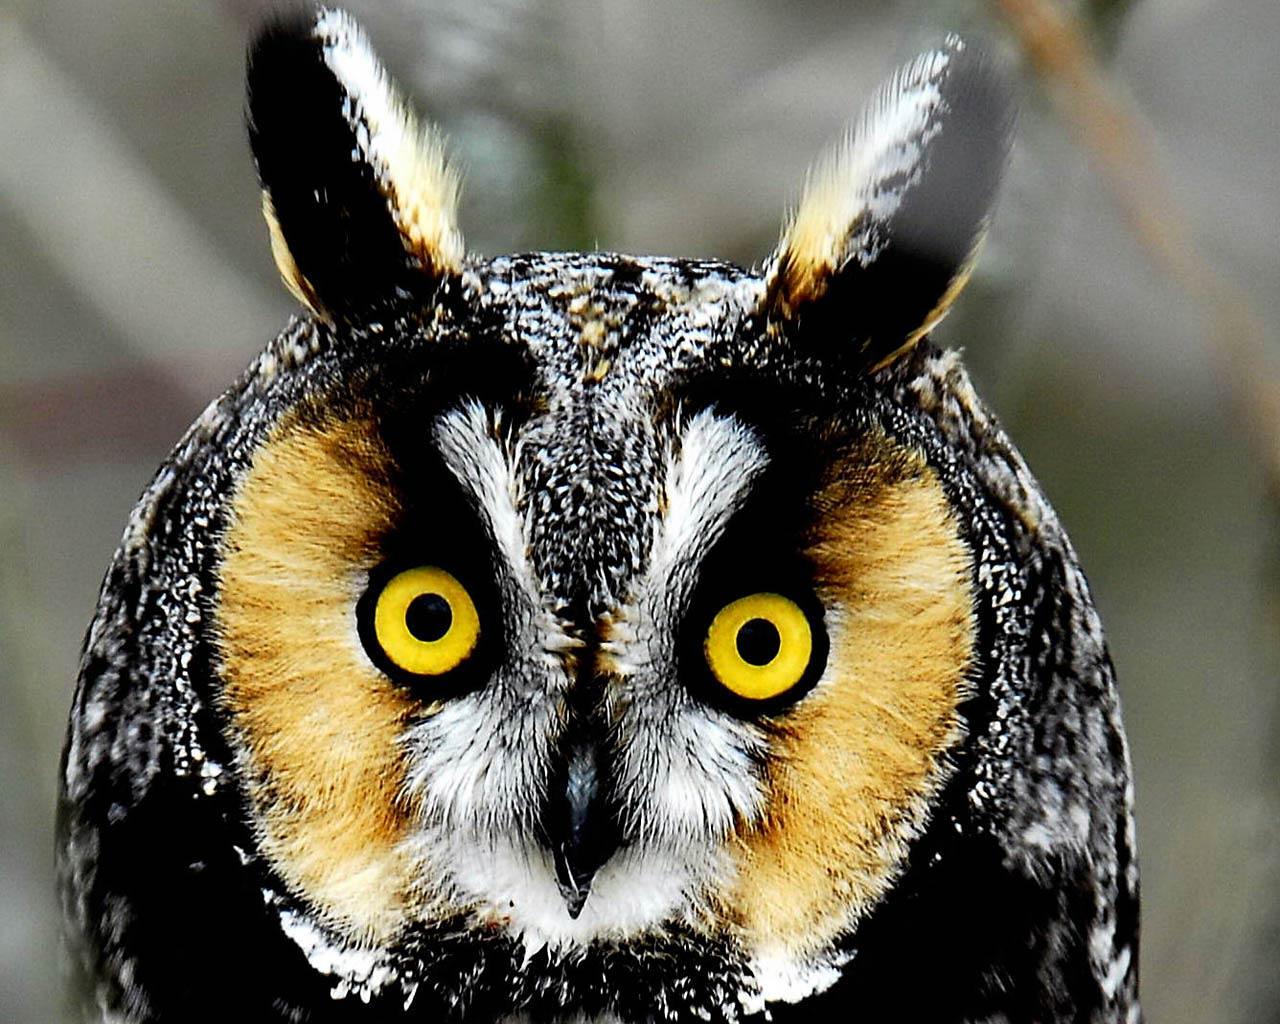 Download Cute Owl Wallpapers   Page 3 of 3   WallpaperHDwiki 1280x1024